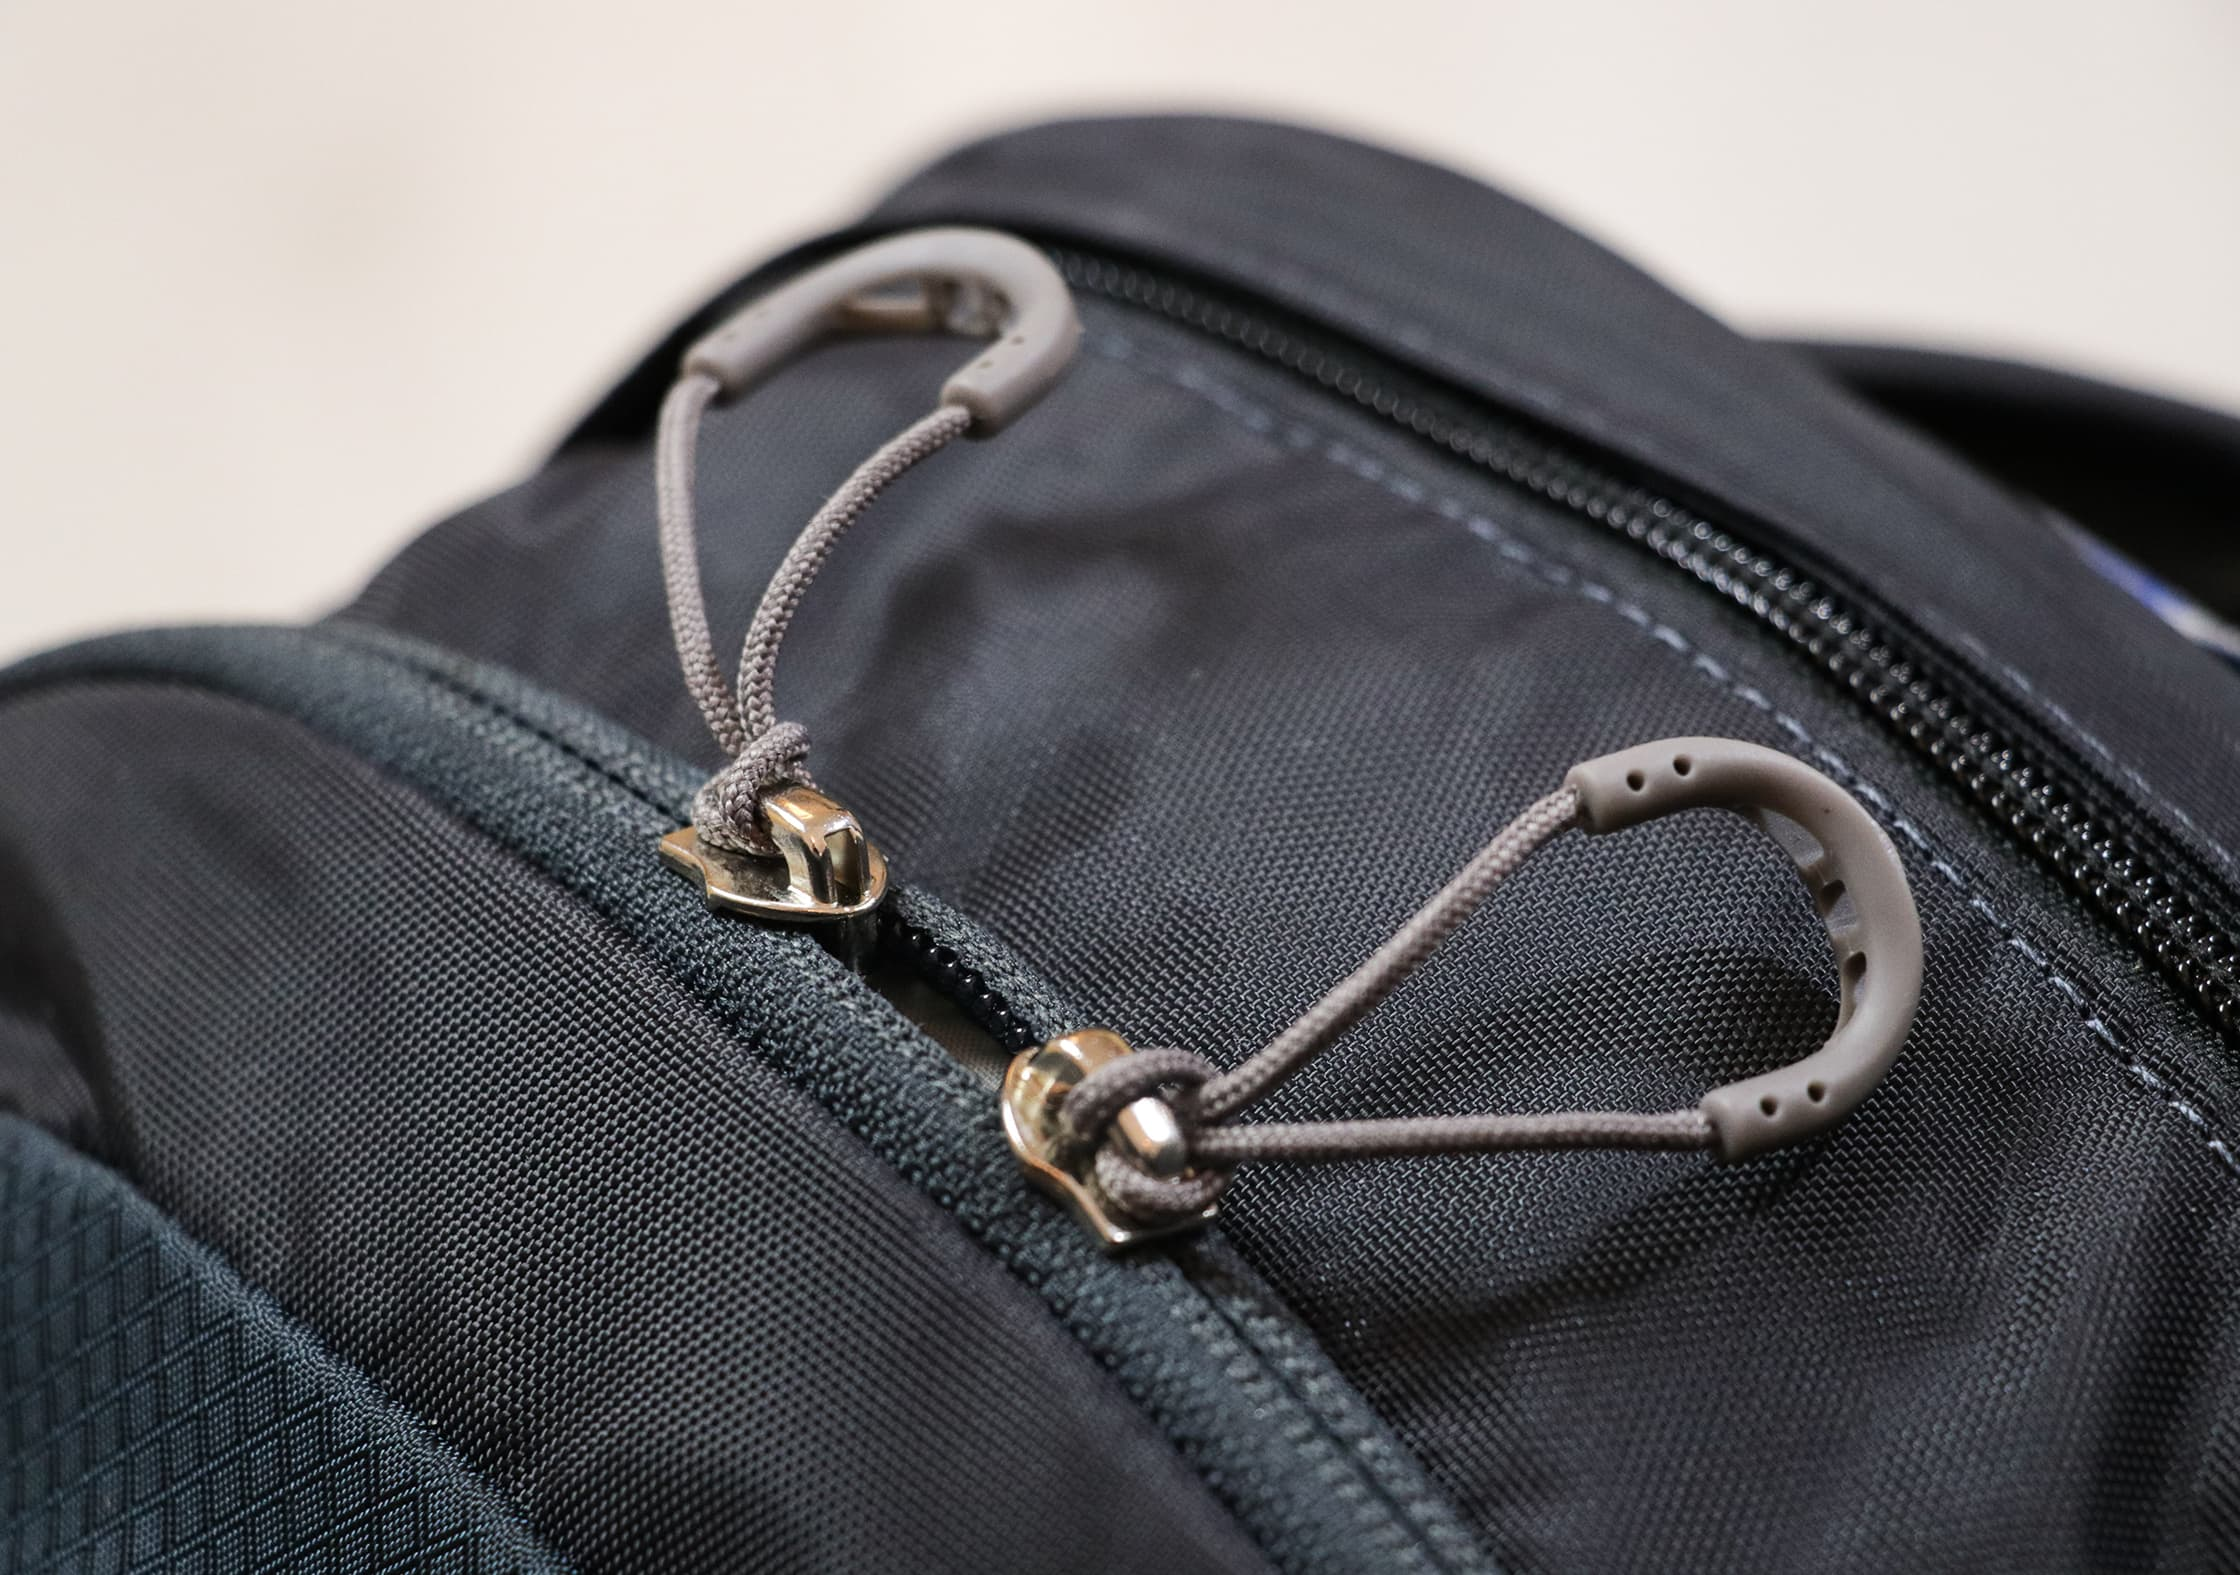 YKK Zippers & Plastic Zipper Pulls On The Osprey Daylite